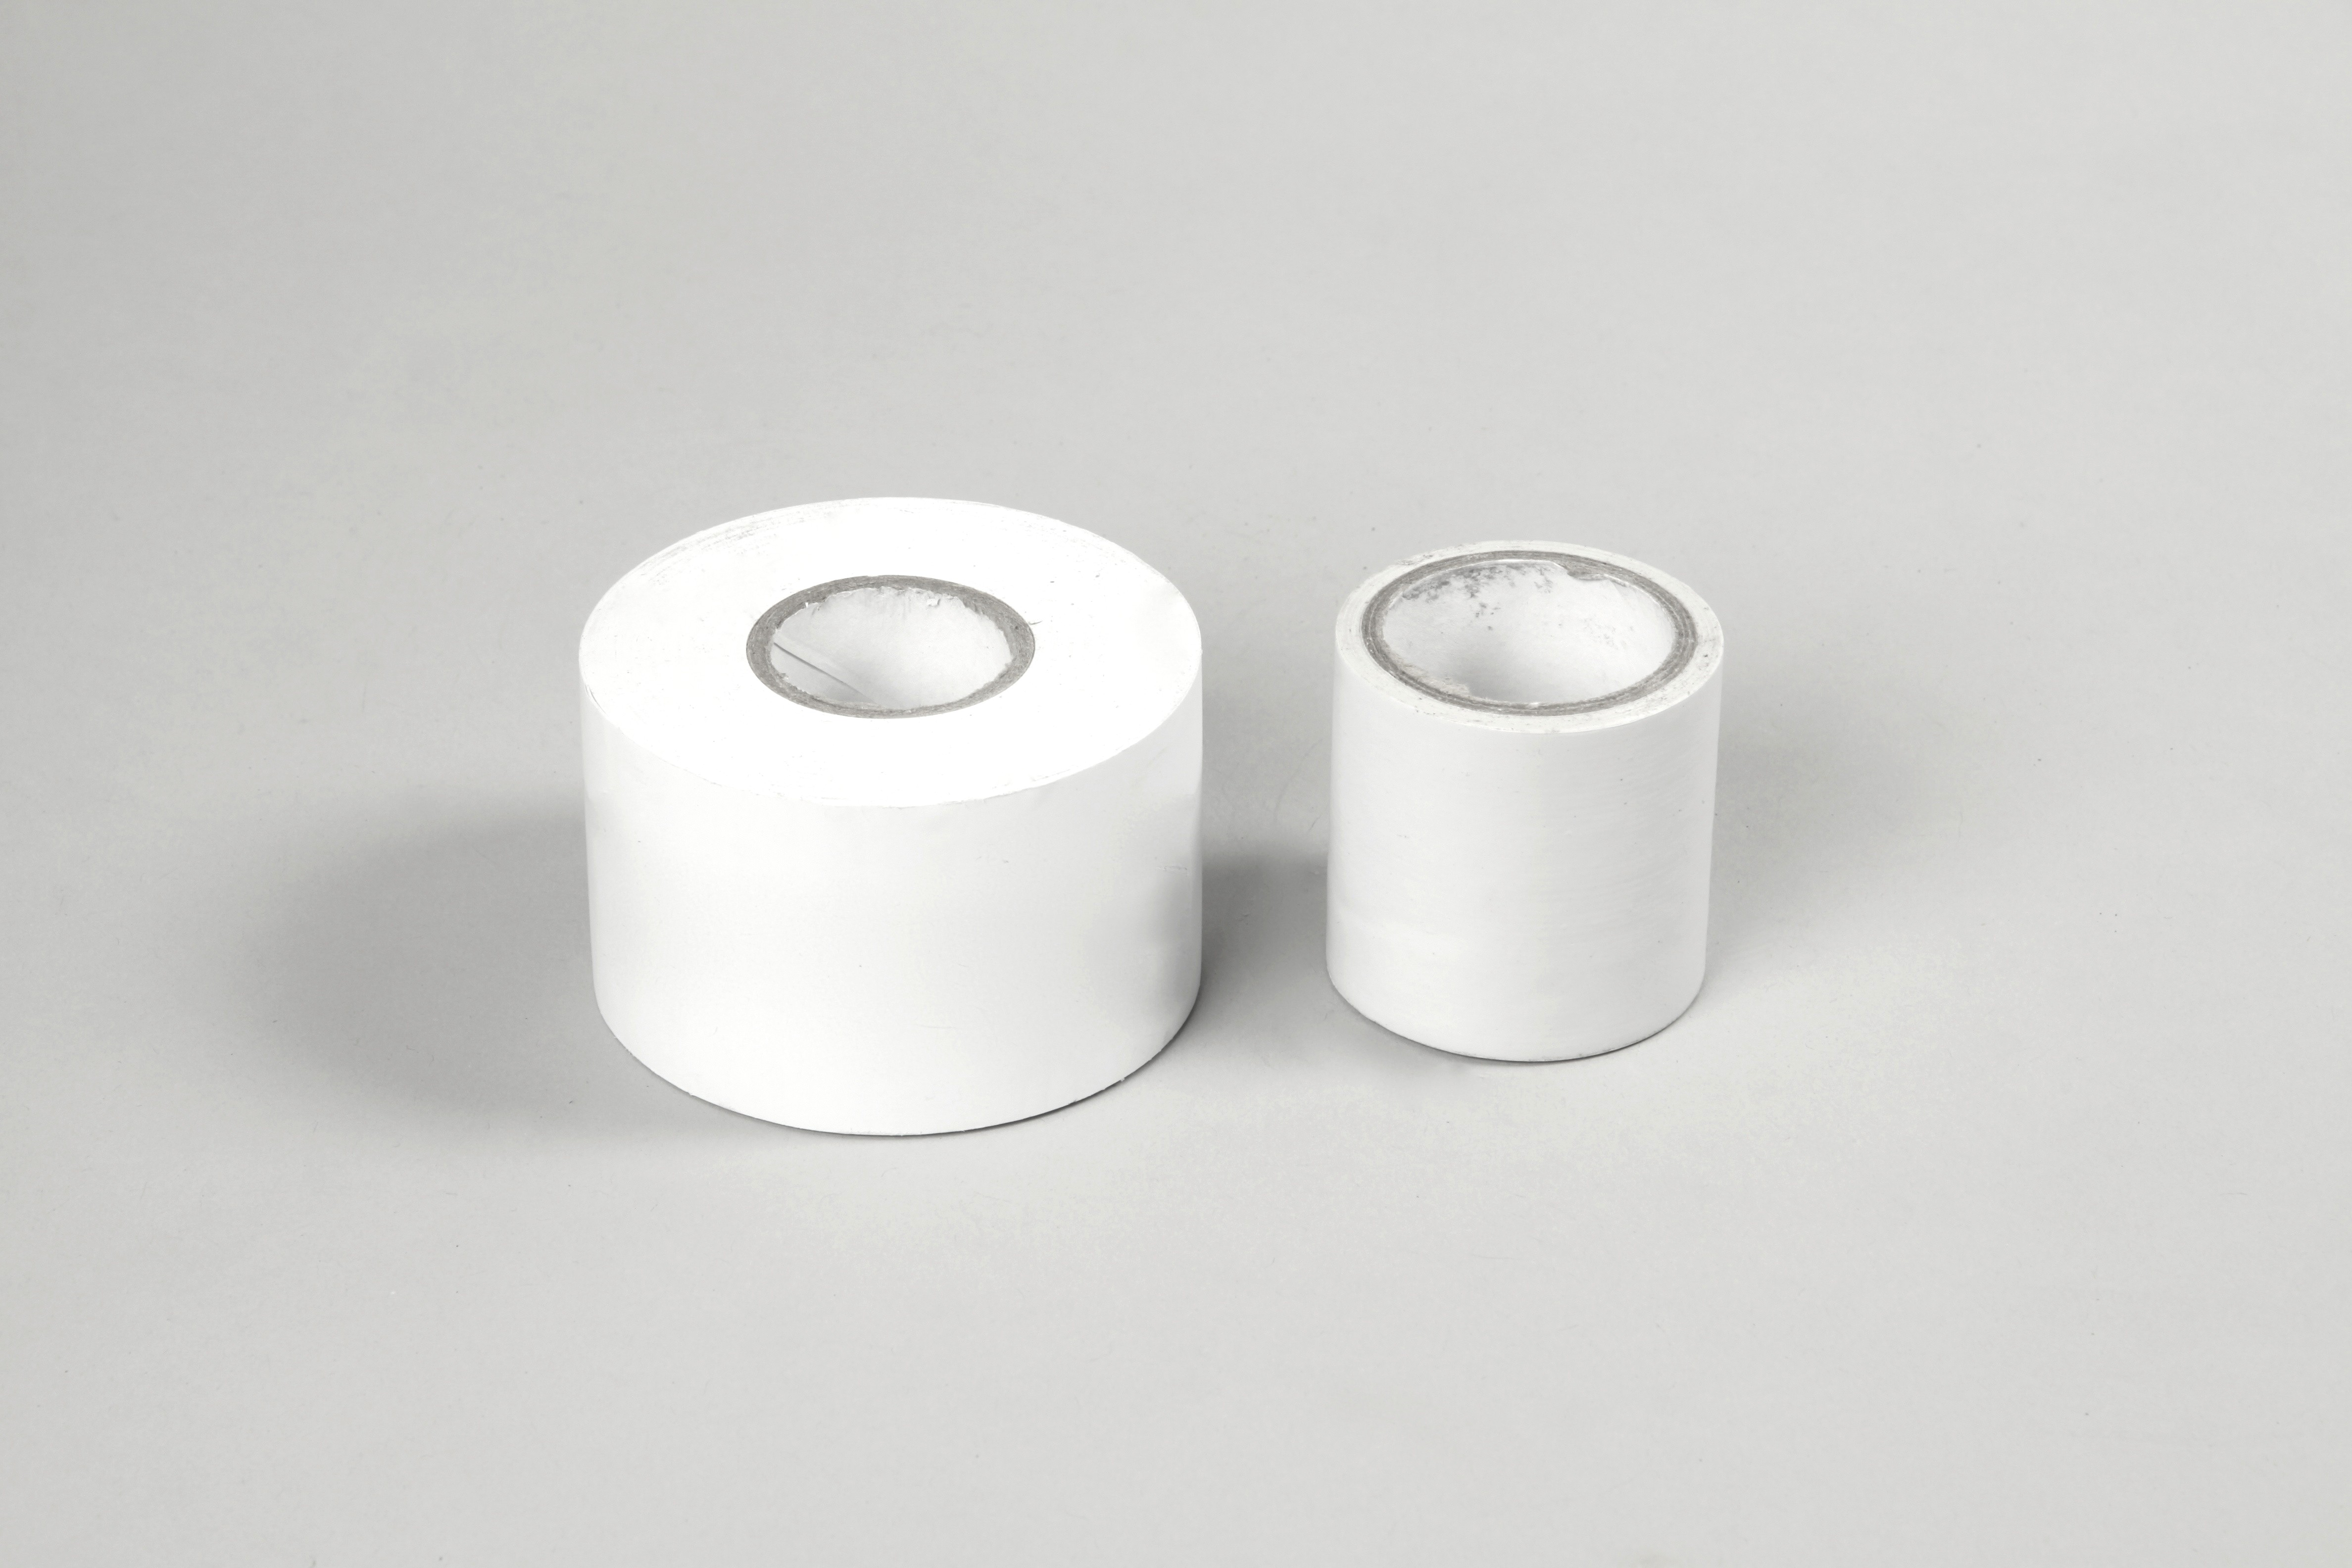 Duct tape 50mm x 33 metres for sealing ducting vent systems